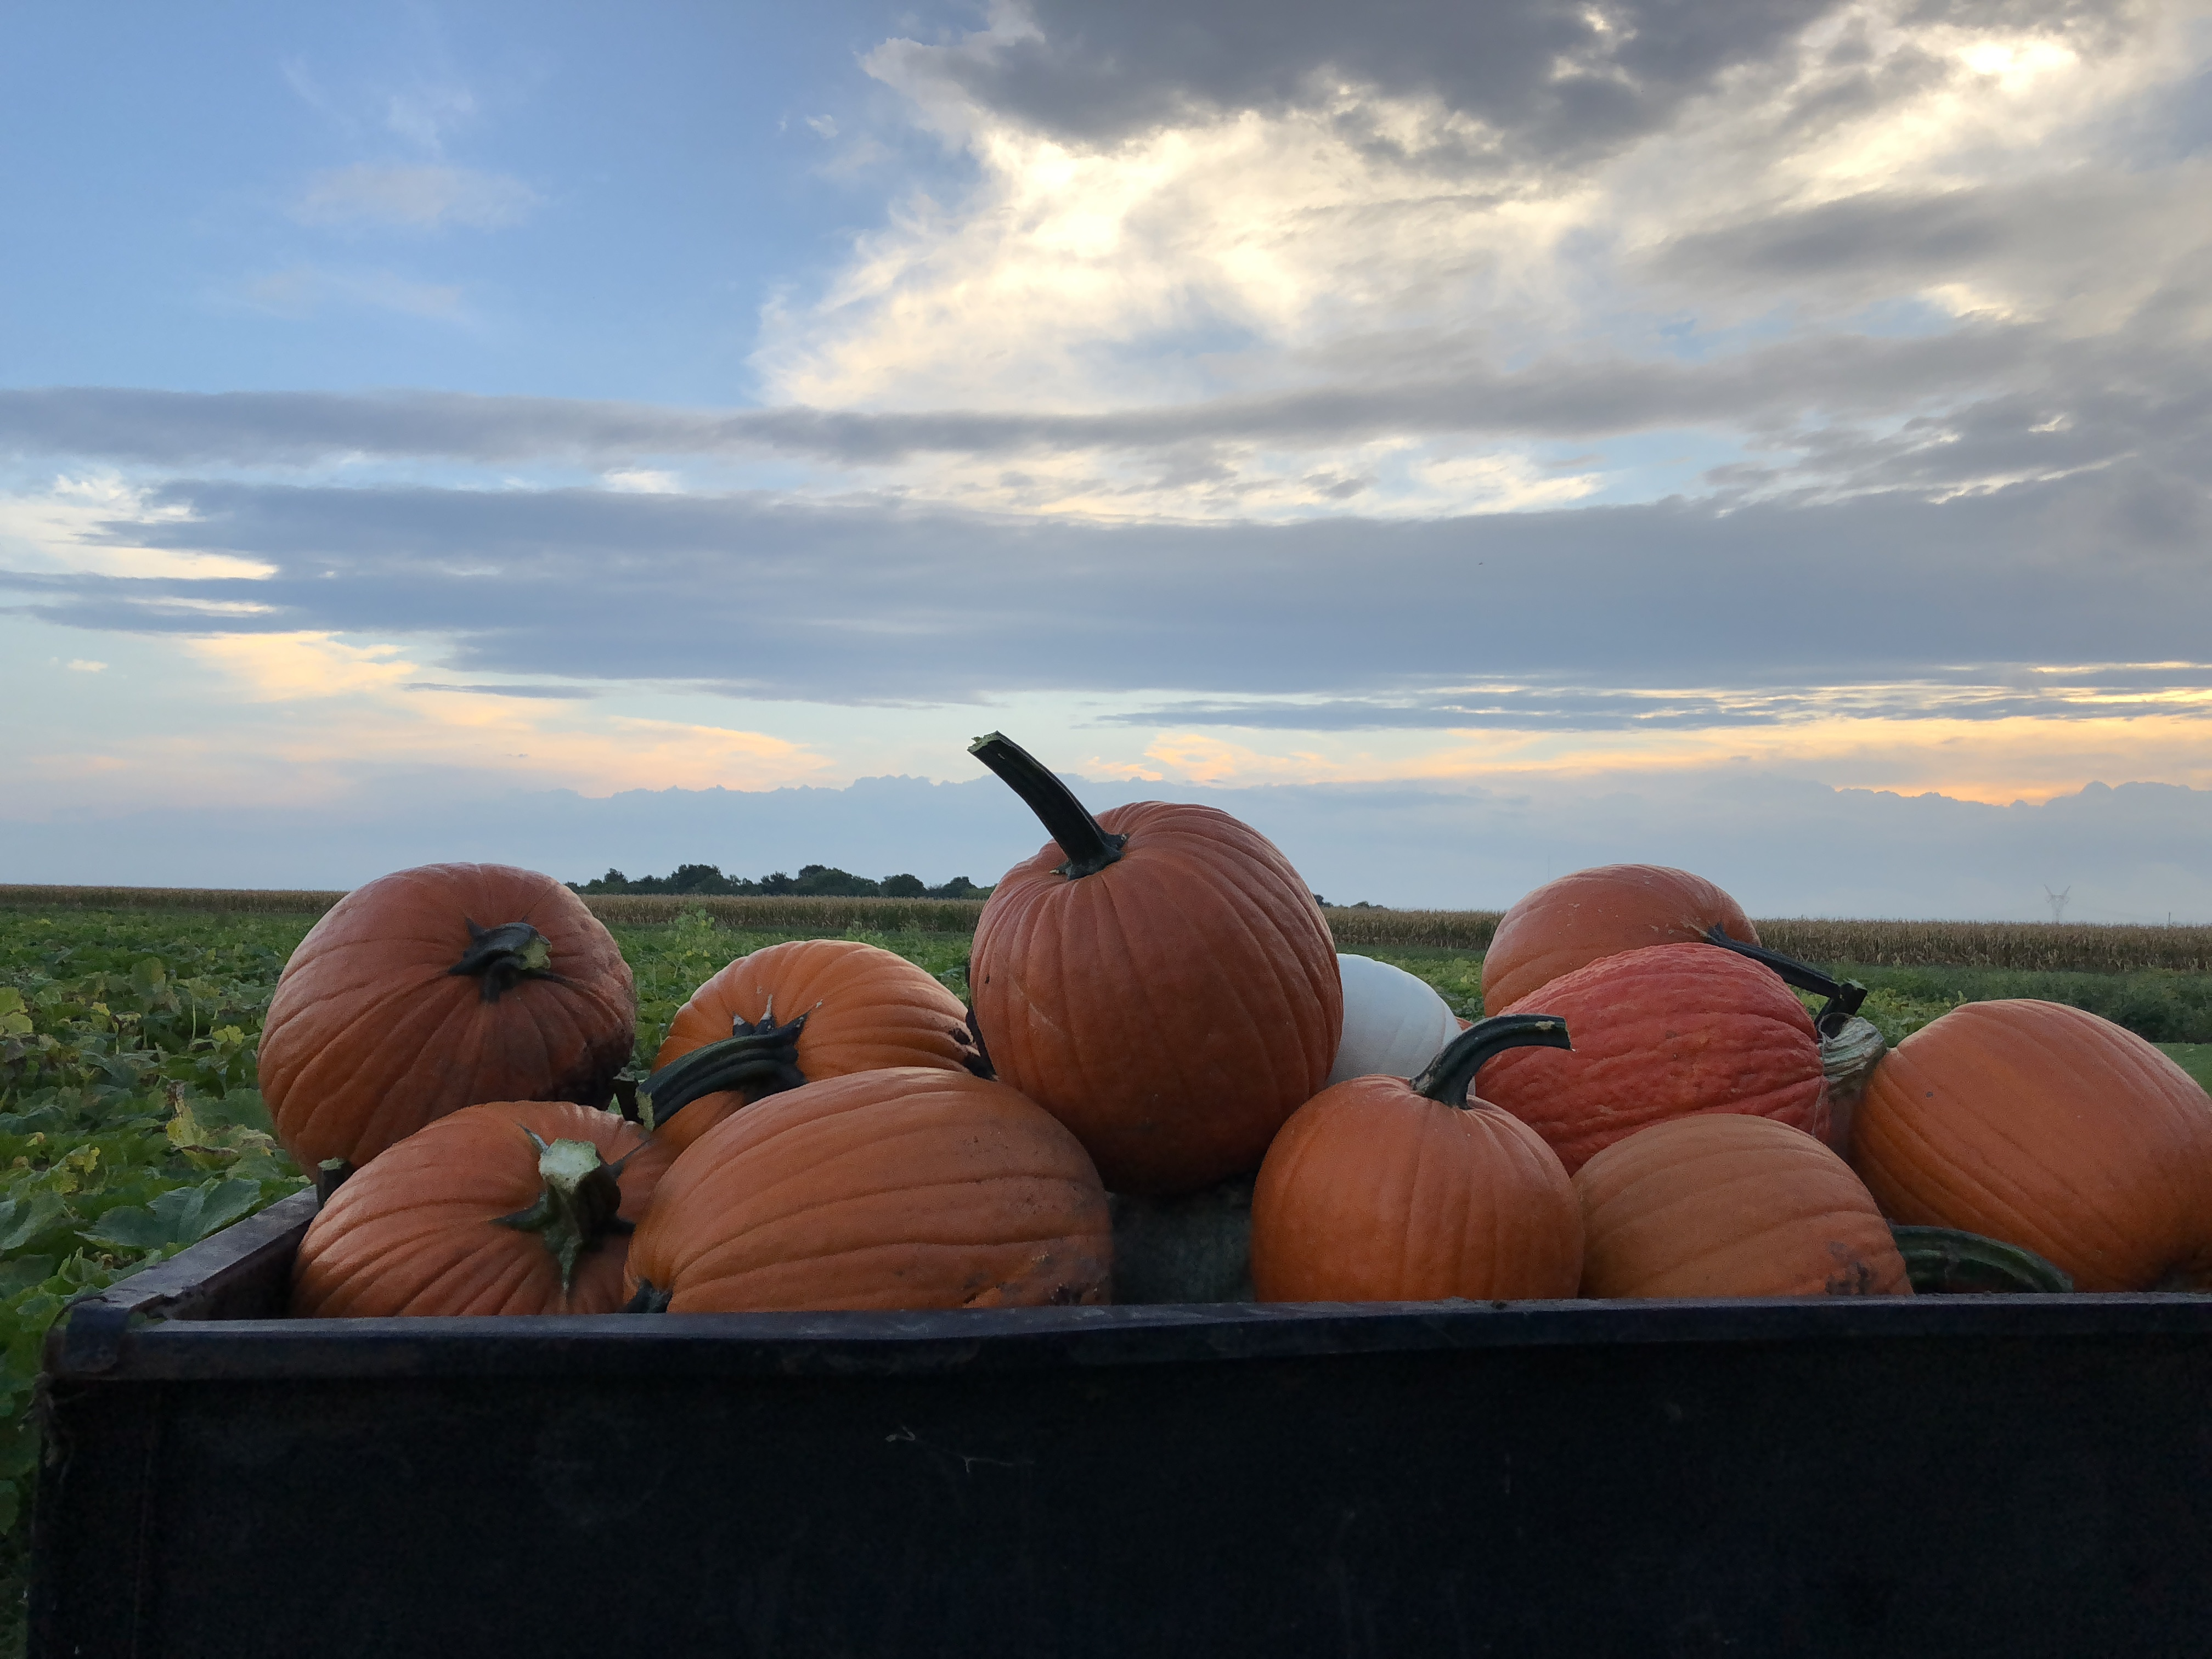 last load of pumpkins for the day